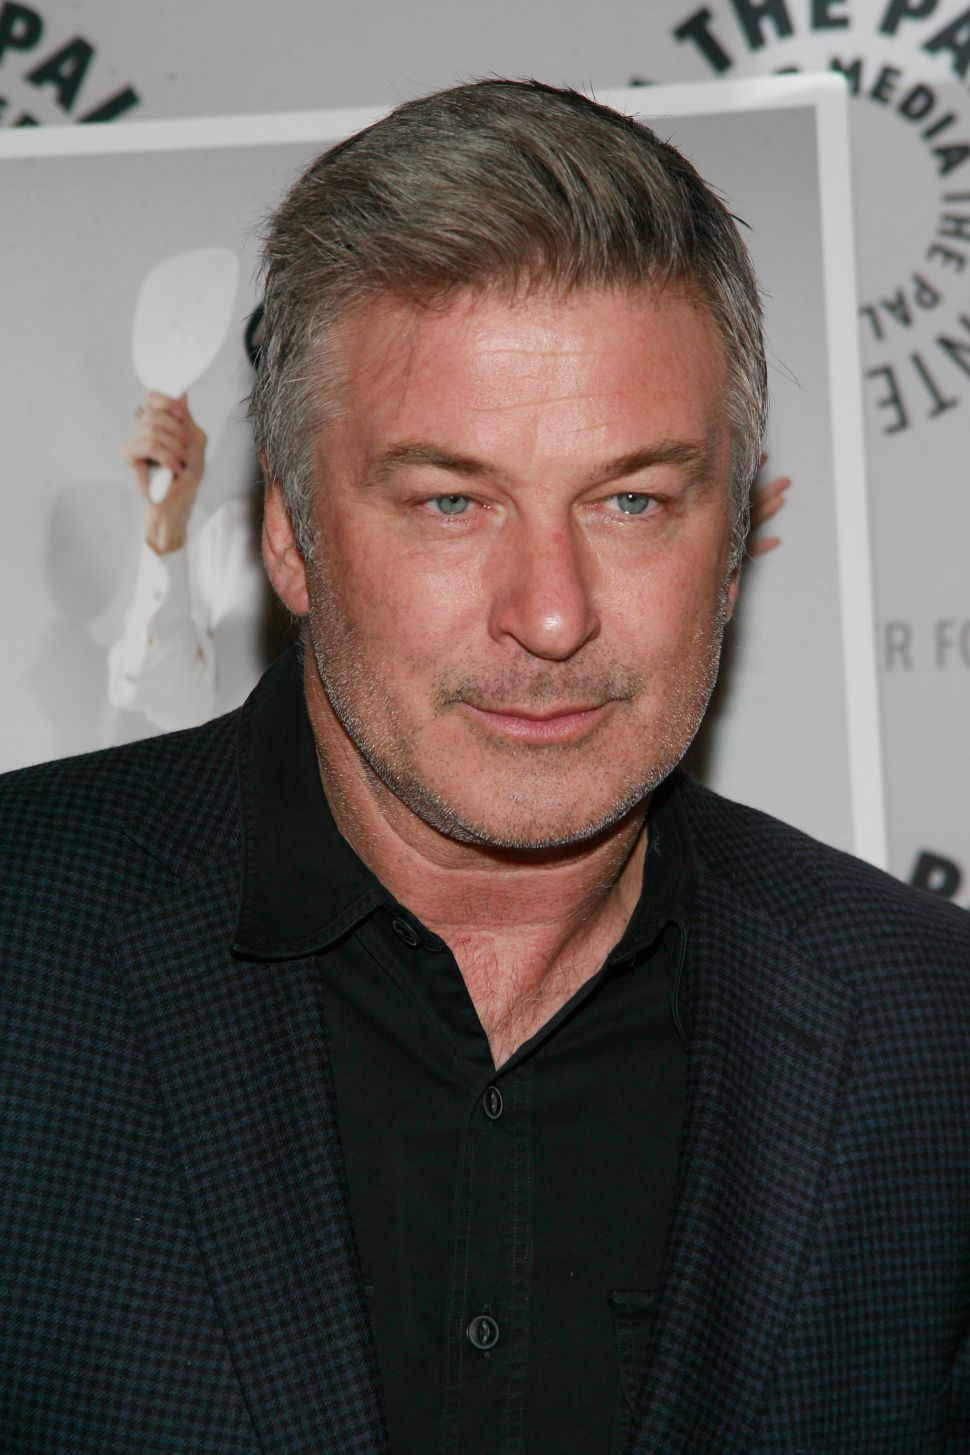 Drama on Fifth Avenue: Alec Baldwin Arrested